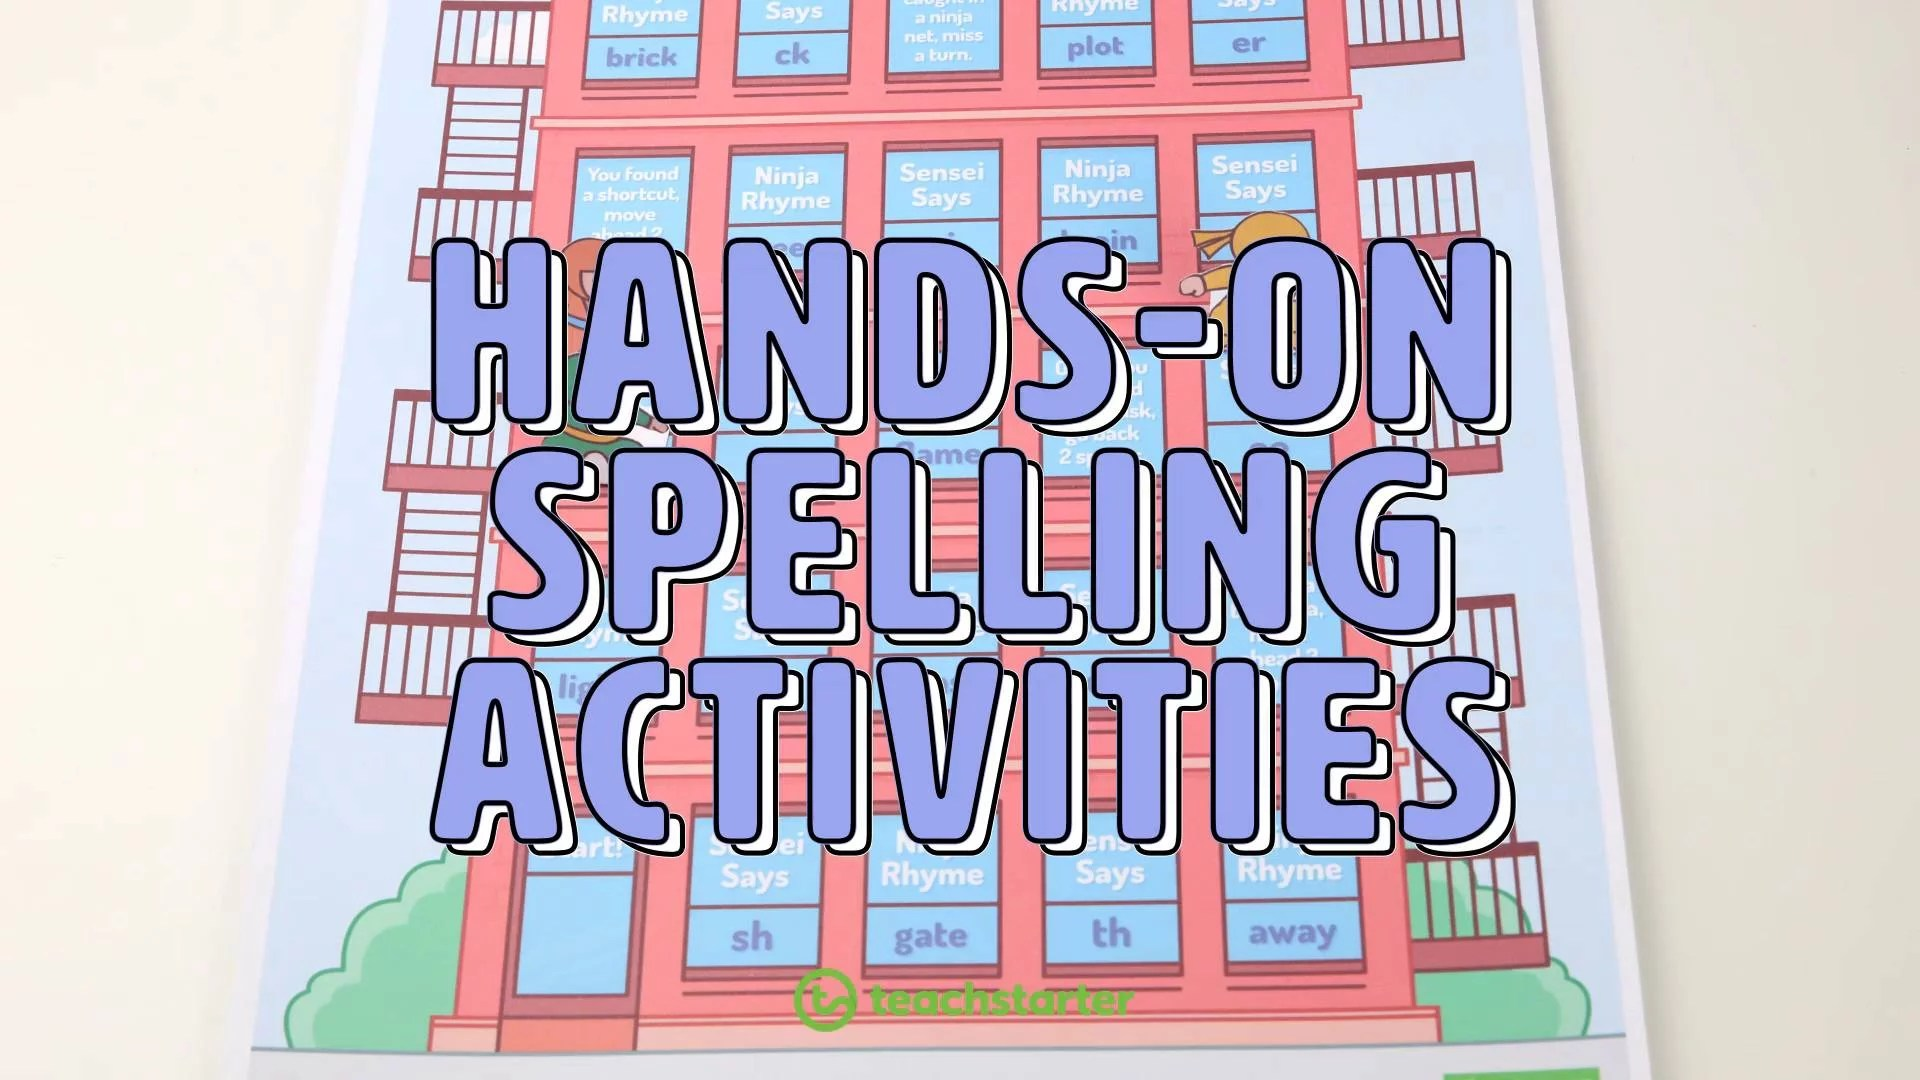 14 Fun Spelling Activity Ideas to Use in the Classroom   Teach Starter [ 720 x 1280 Pixel ]